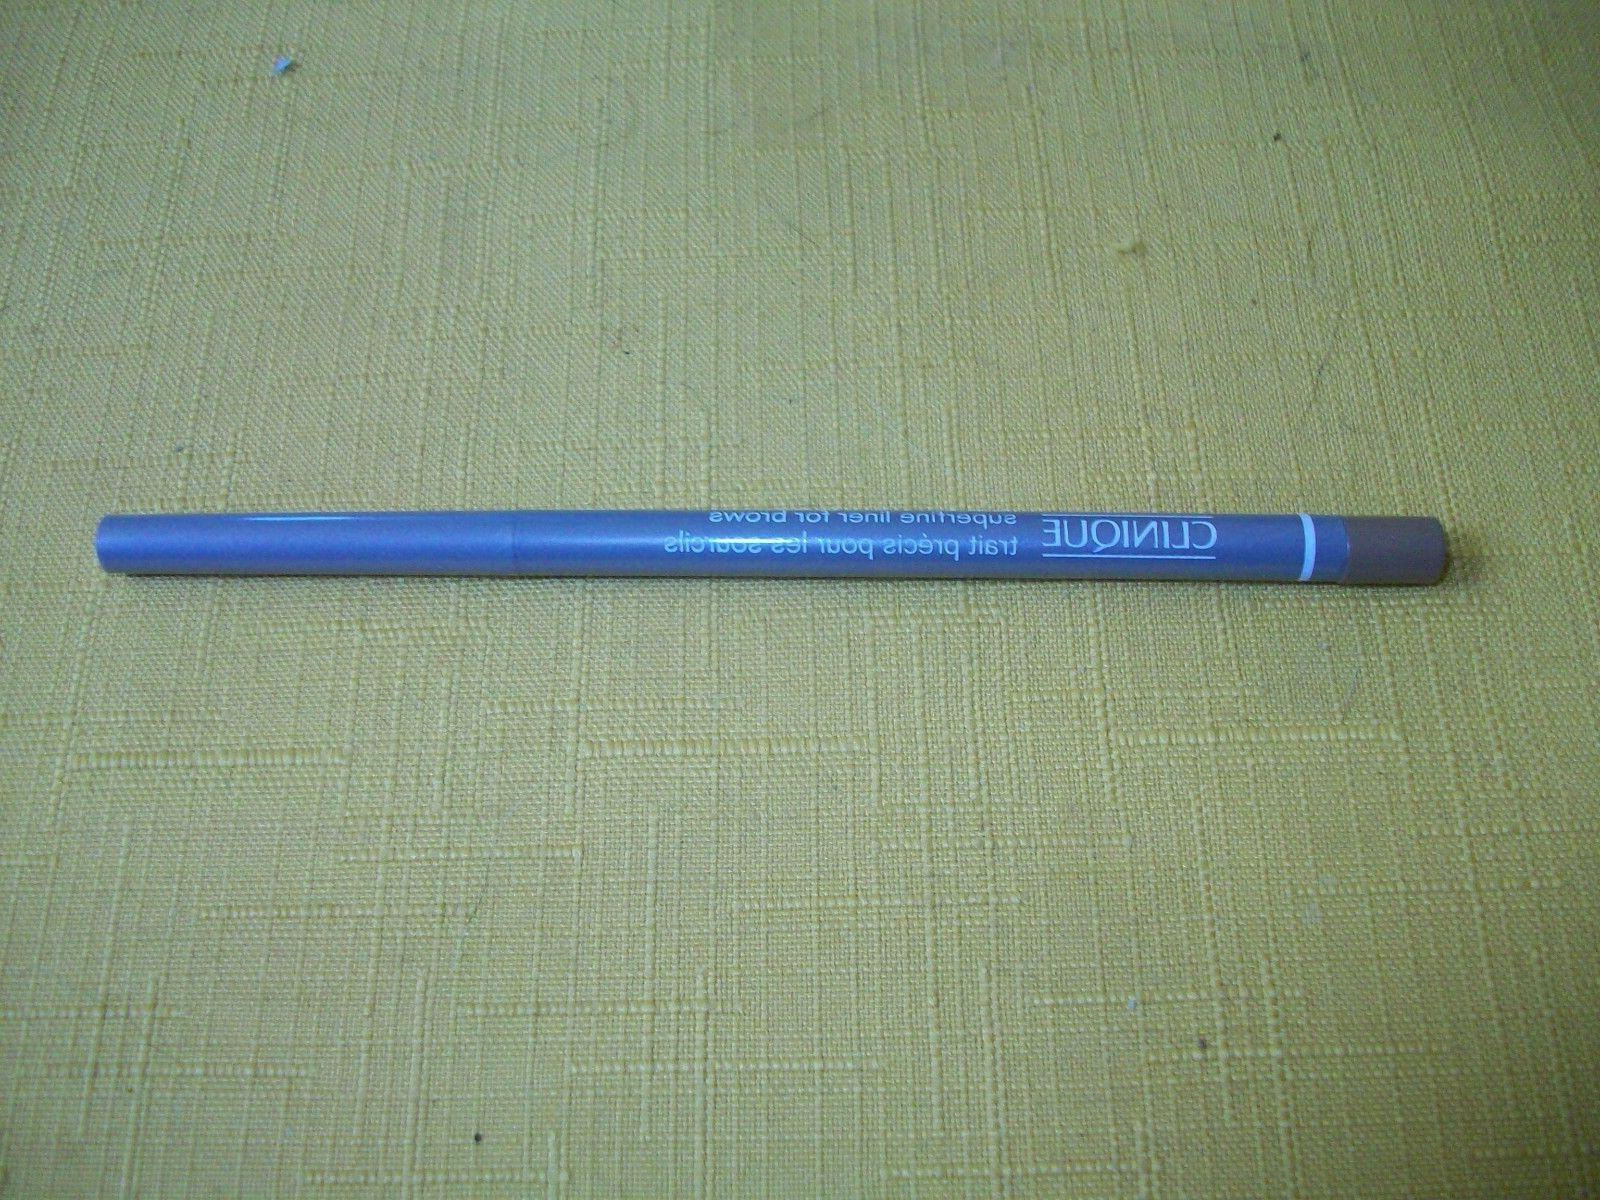 Eyebrow Liner Pencil - CLINIQUE - SUPERFINE - Soft Blonde 01